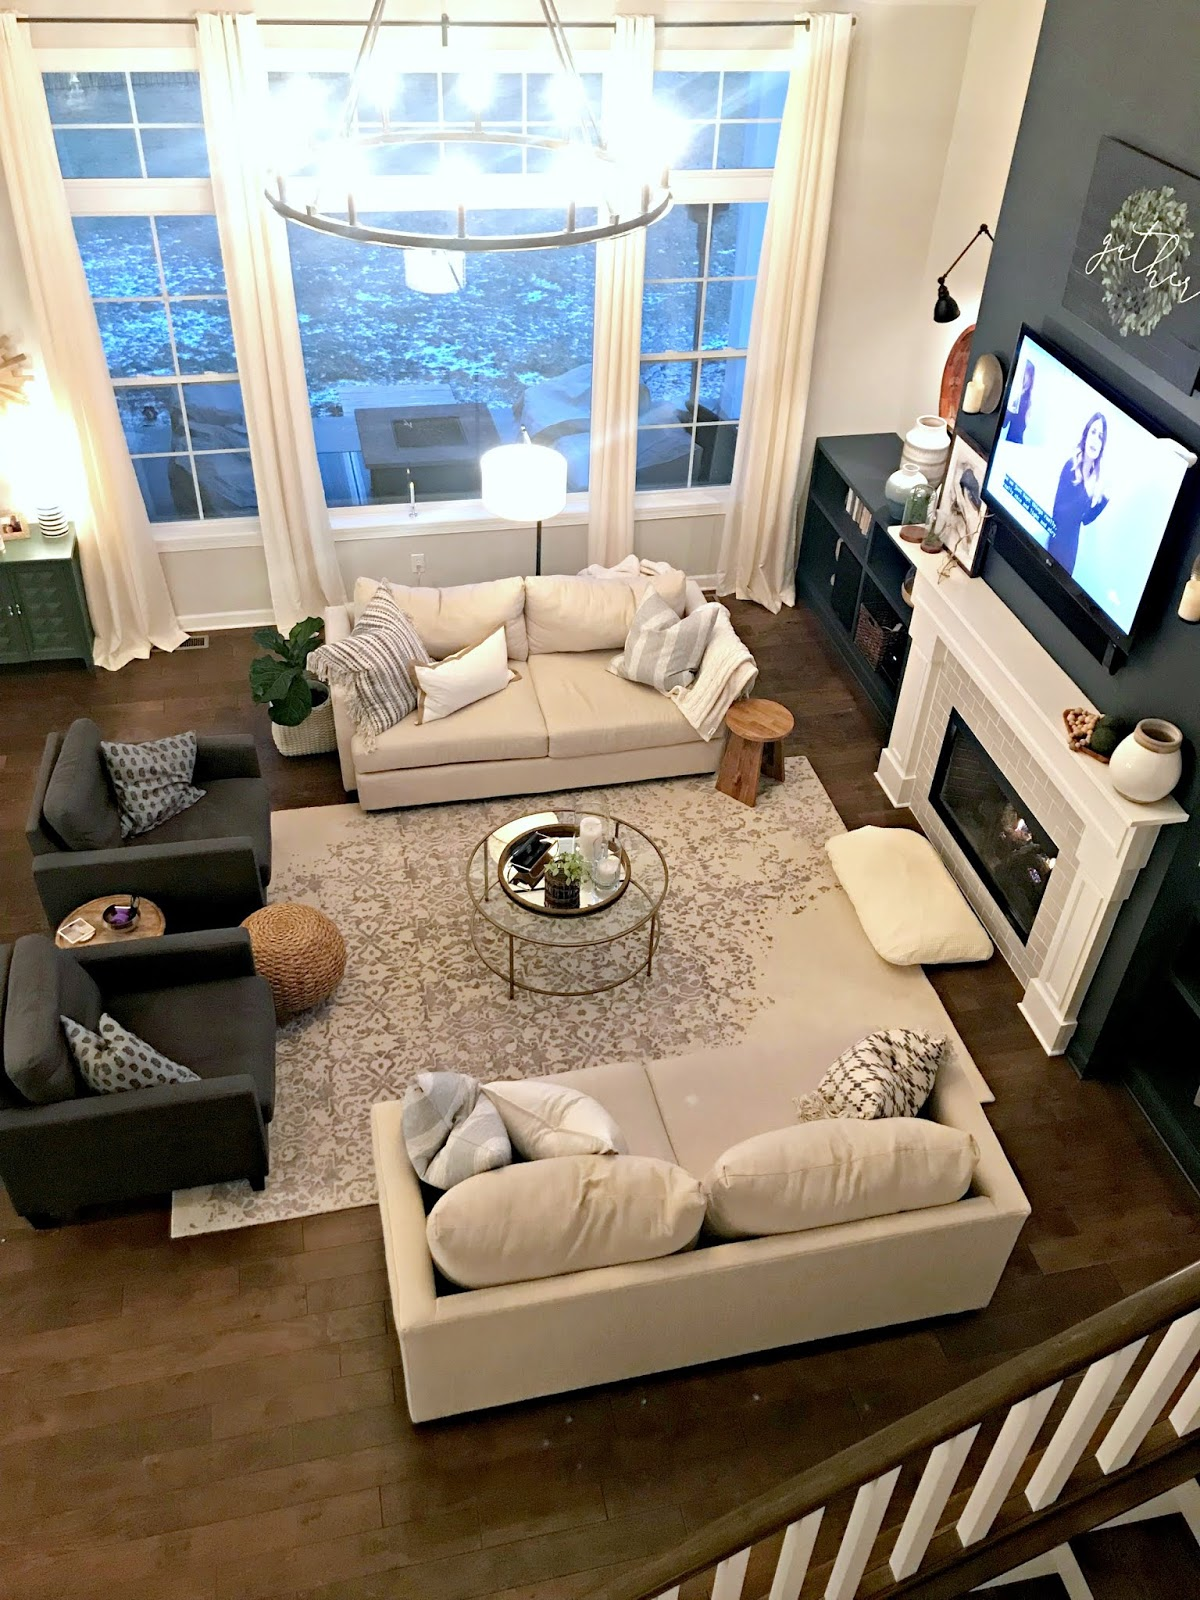 Large great room with symmetrical furniture set up